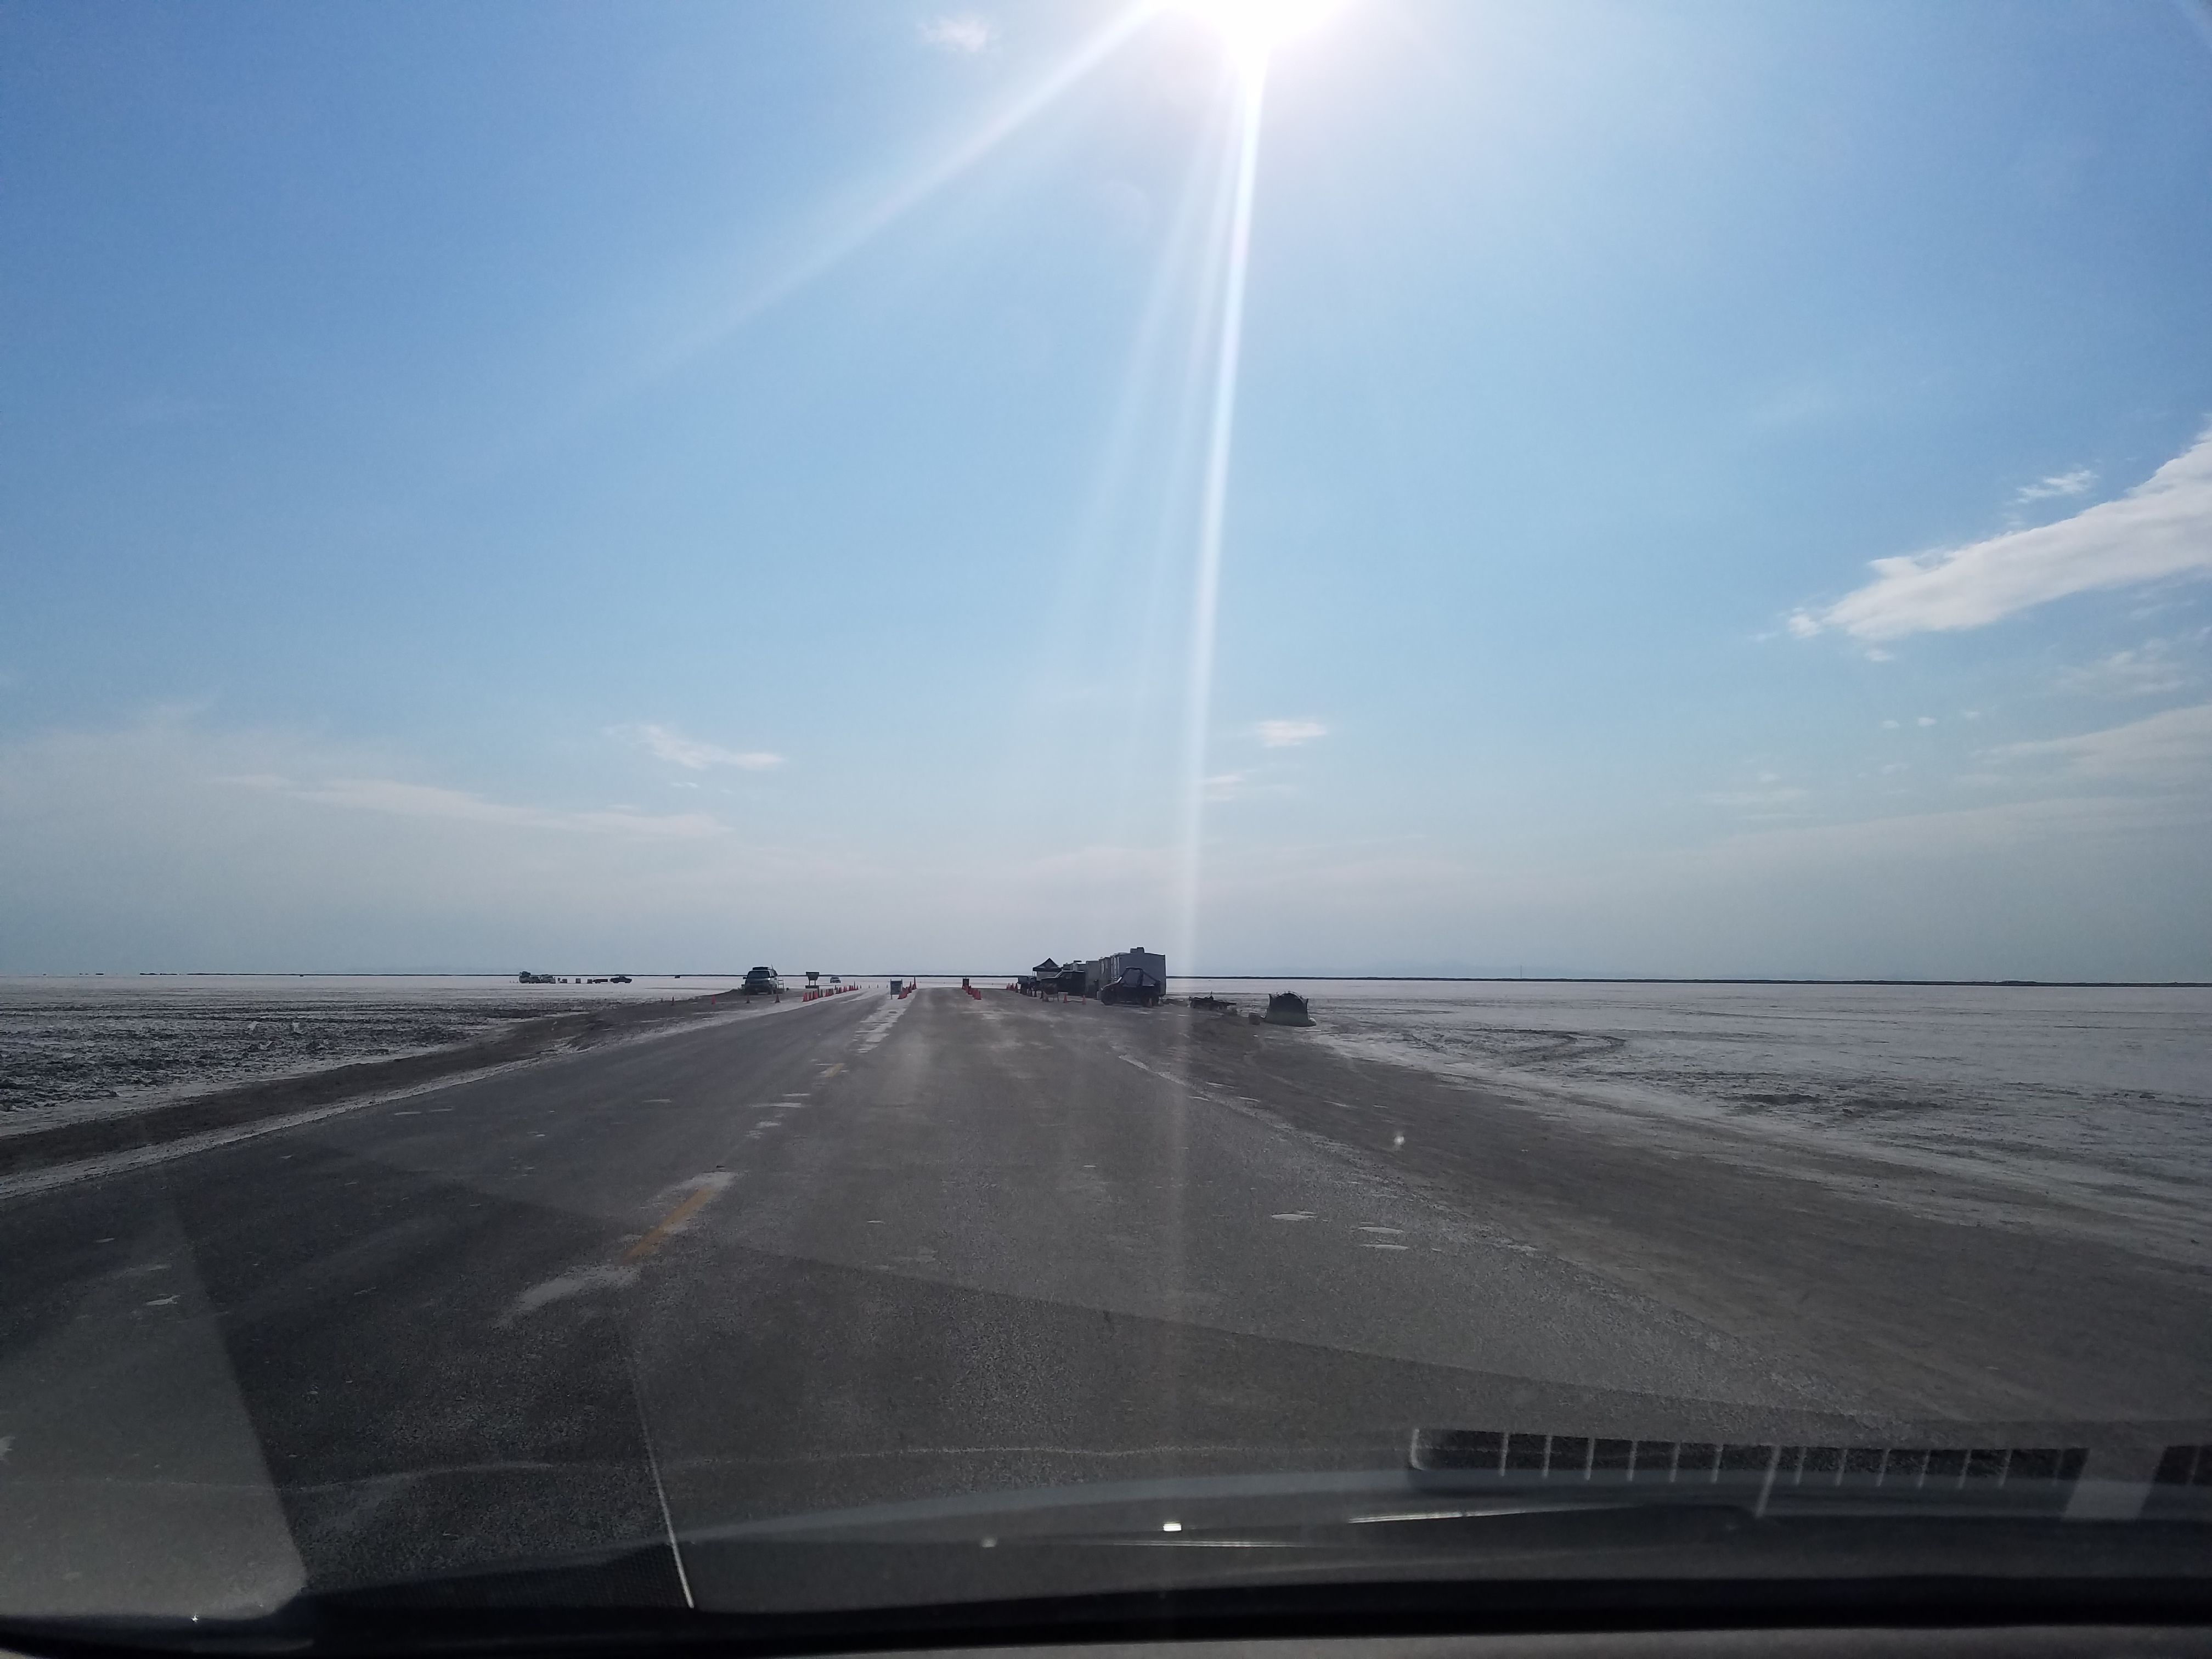 Driving up to the Pay Area of the Bonneville Salt Flats